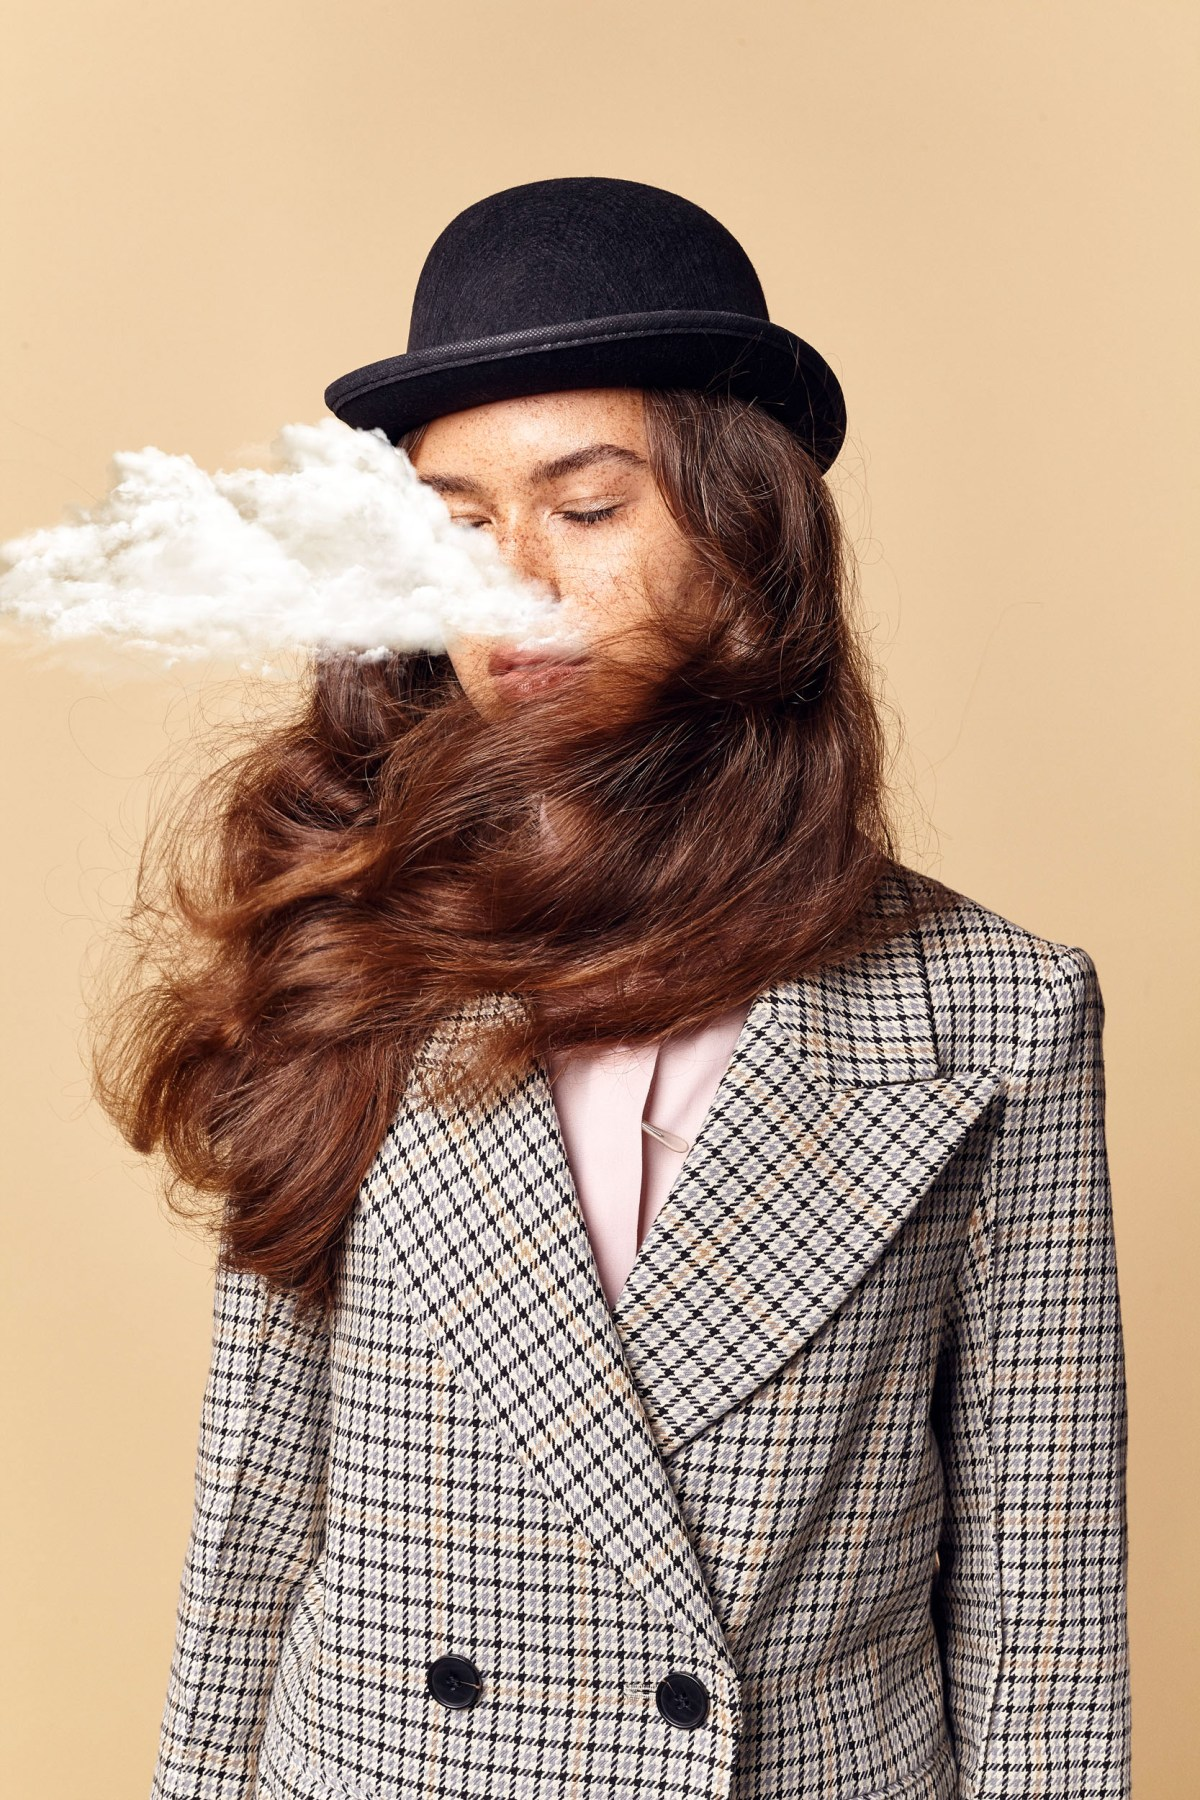 Magritte inspired fashion shoot